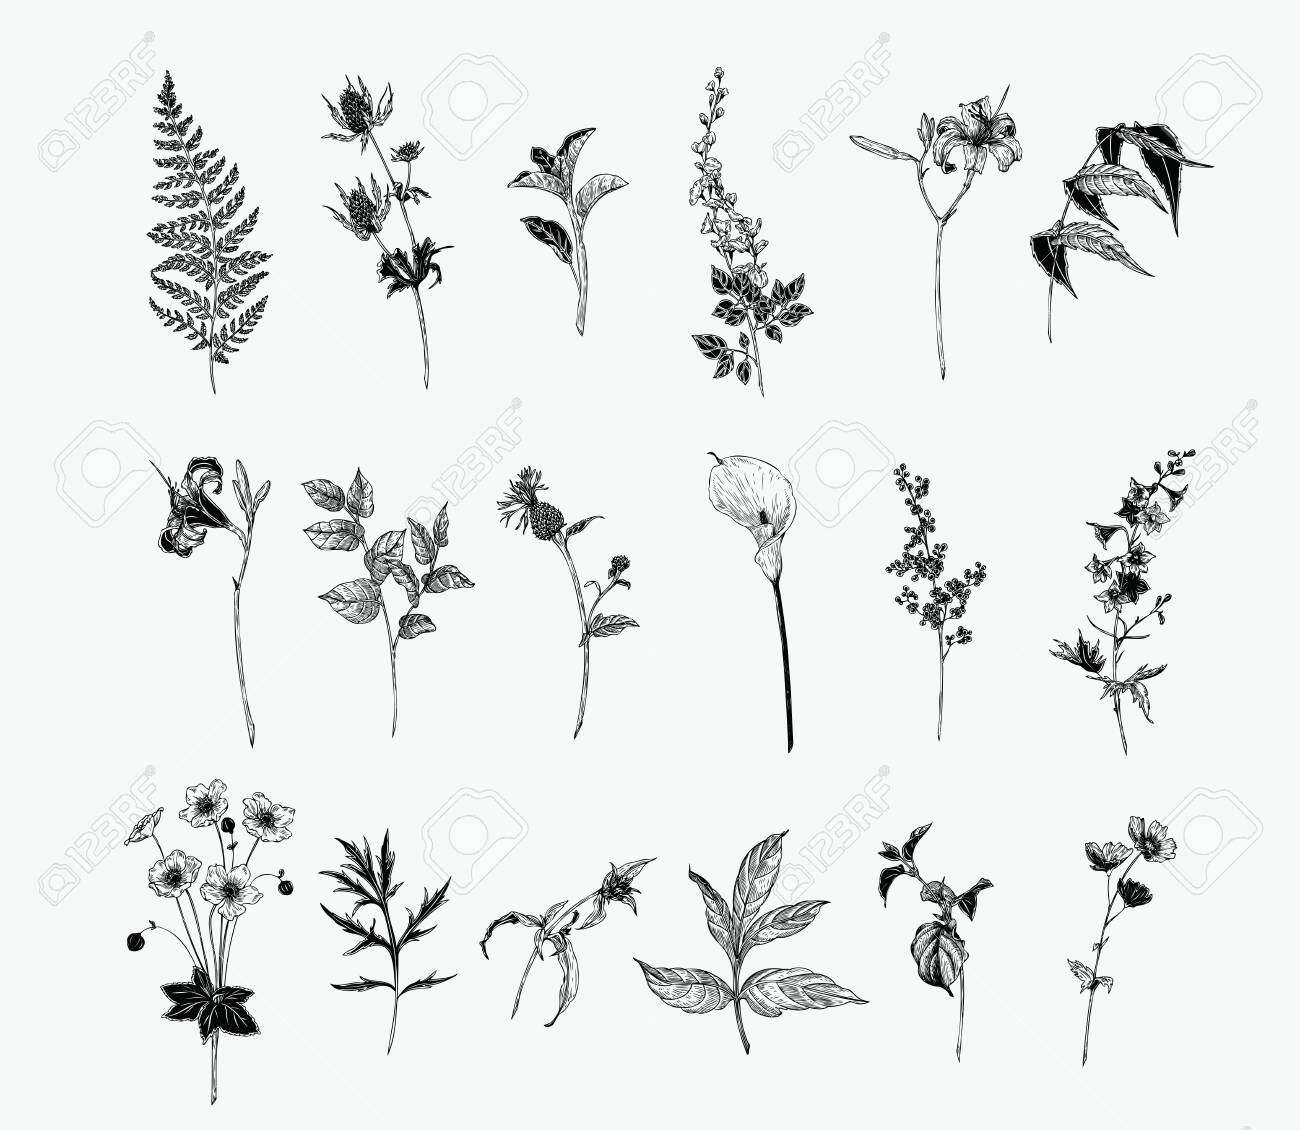 Vintage wild flower illustration set. Isolated black and white botanical herbs and flowers hand drawn graphic. Fern, Lily, Calla, Anemone, Salal, Wisteria, Delphinium - 127095997